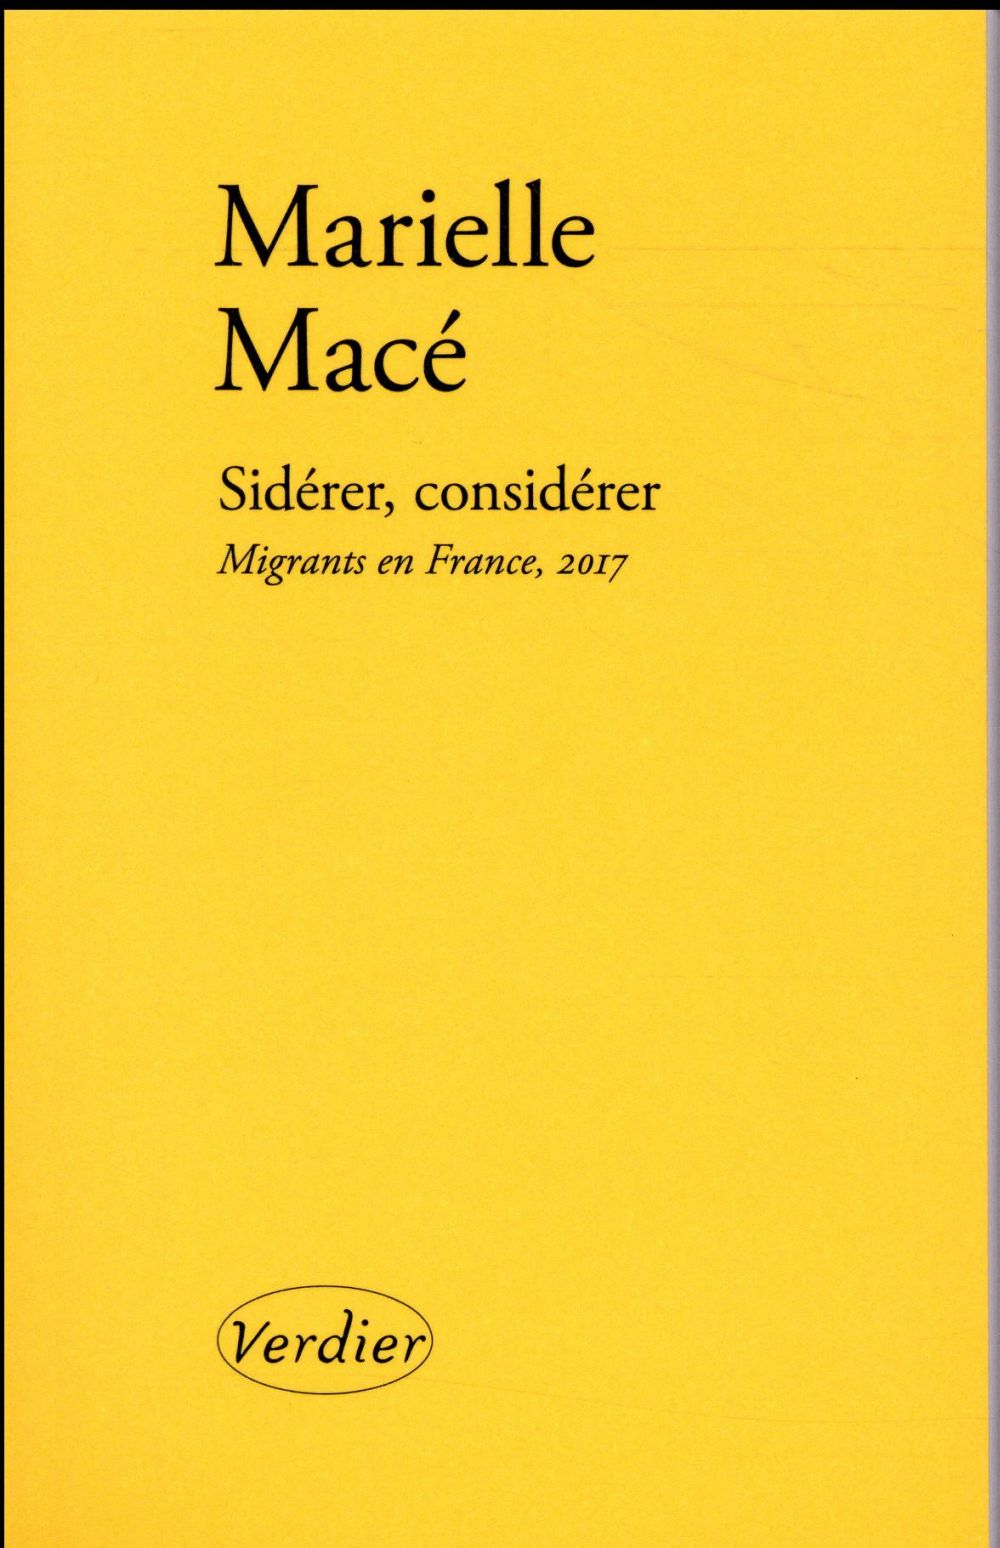 Sidérer, considérer ; migrants en France, 2017